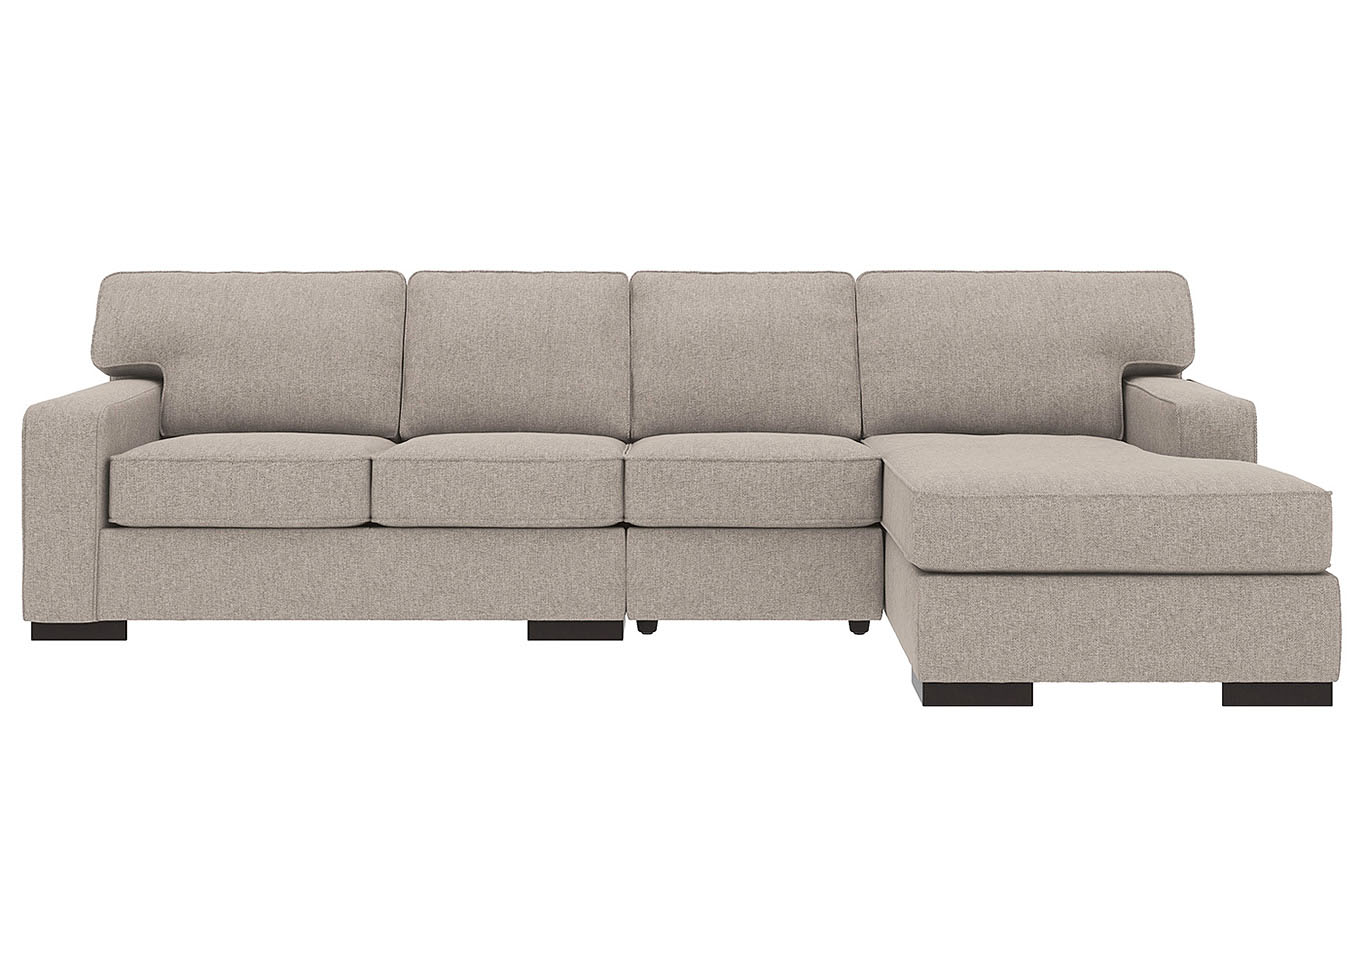 Ashlor Nuvella Slate RAF 3 Piece Chaise Sectional,Ashley